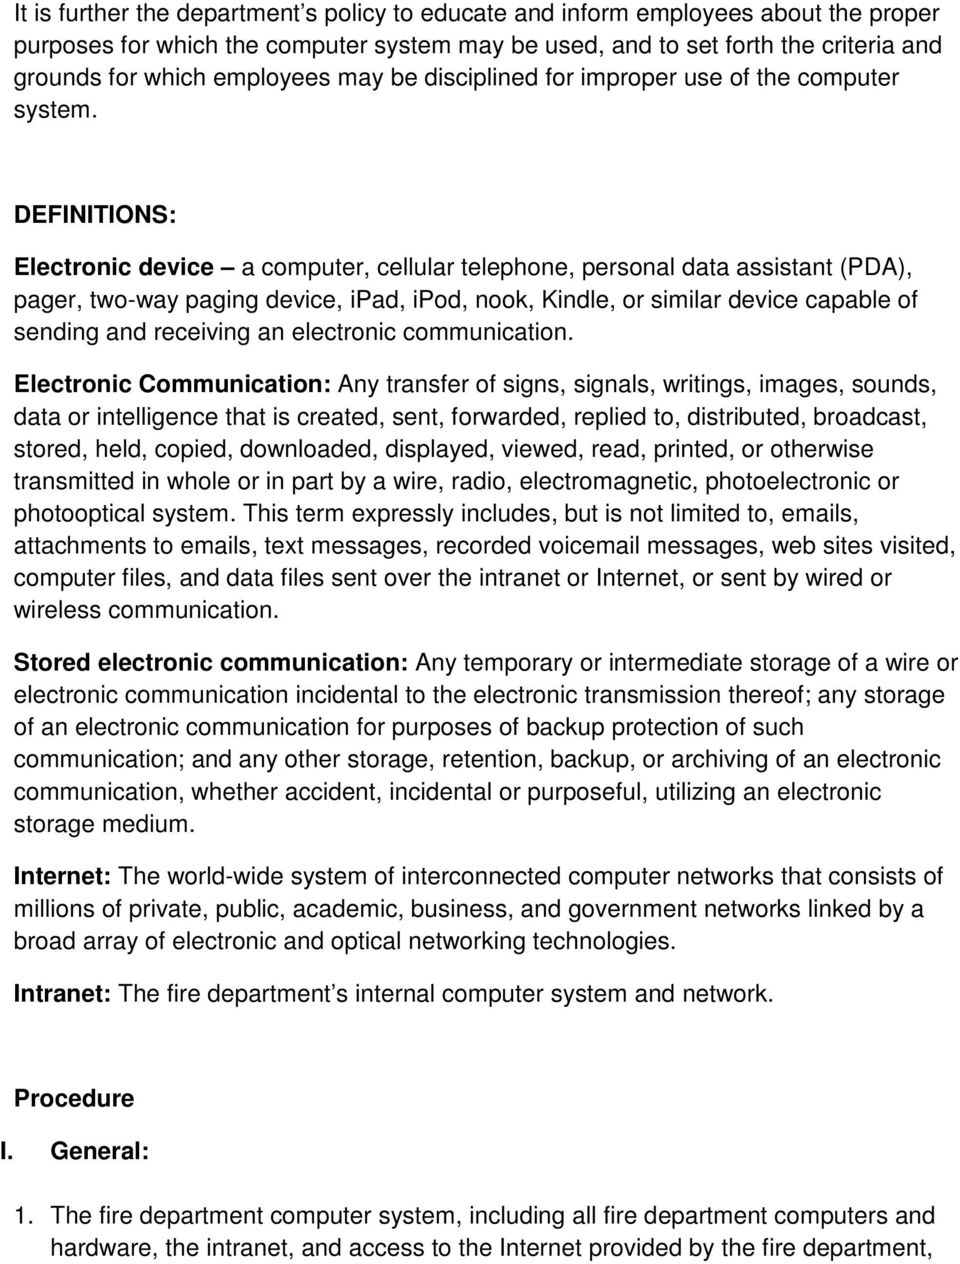 DEFINITIONS: Electronic device a computer, cellular telephone, personal data assistant (PDA), pager, two-way paging device, ipad, ipod, nook, Kindle, or similar device capable of sending and